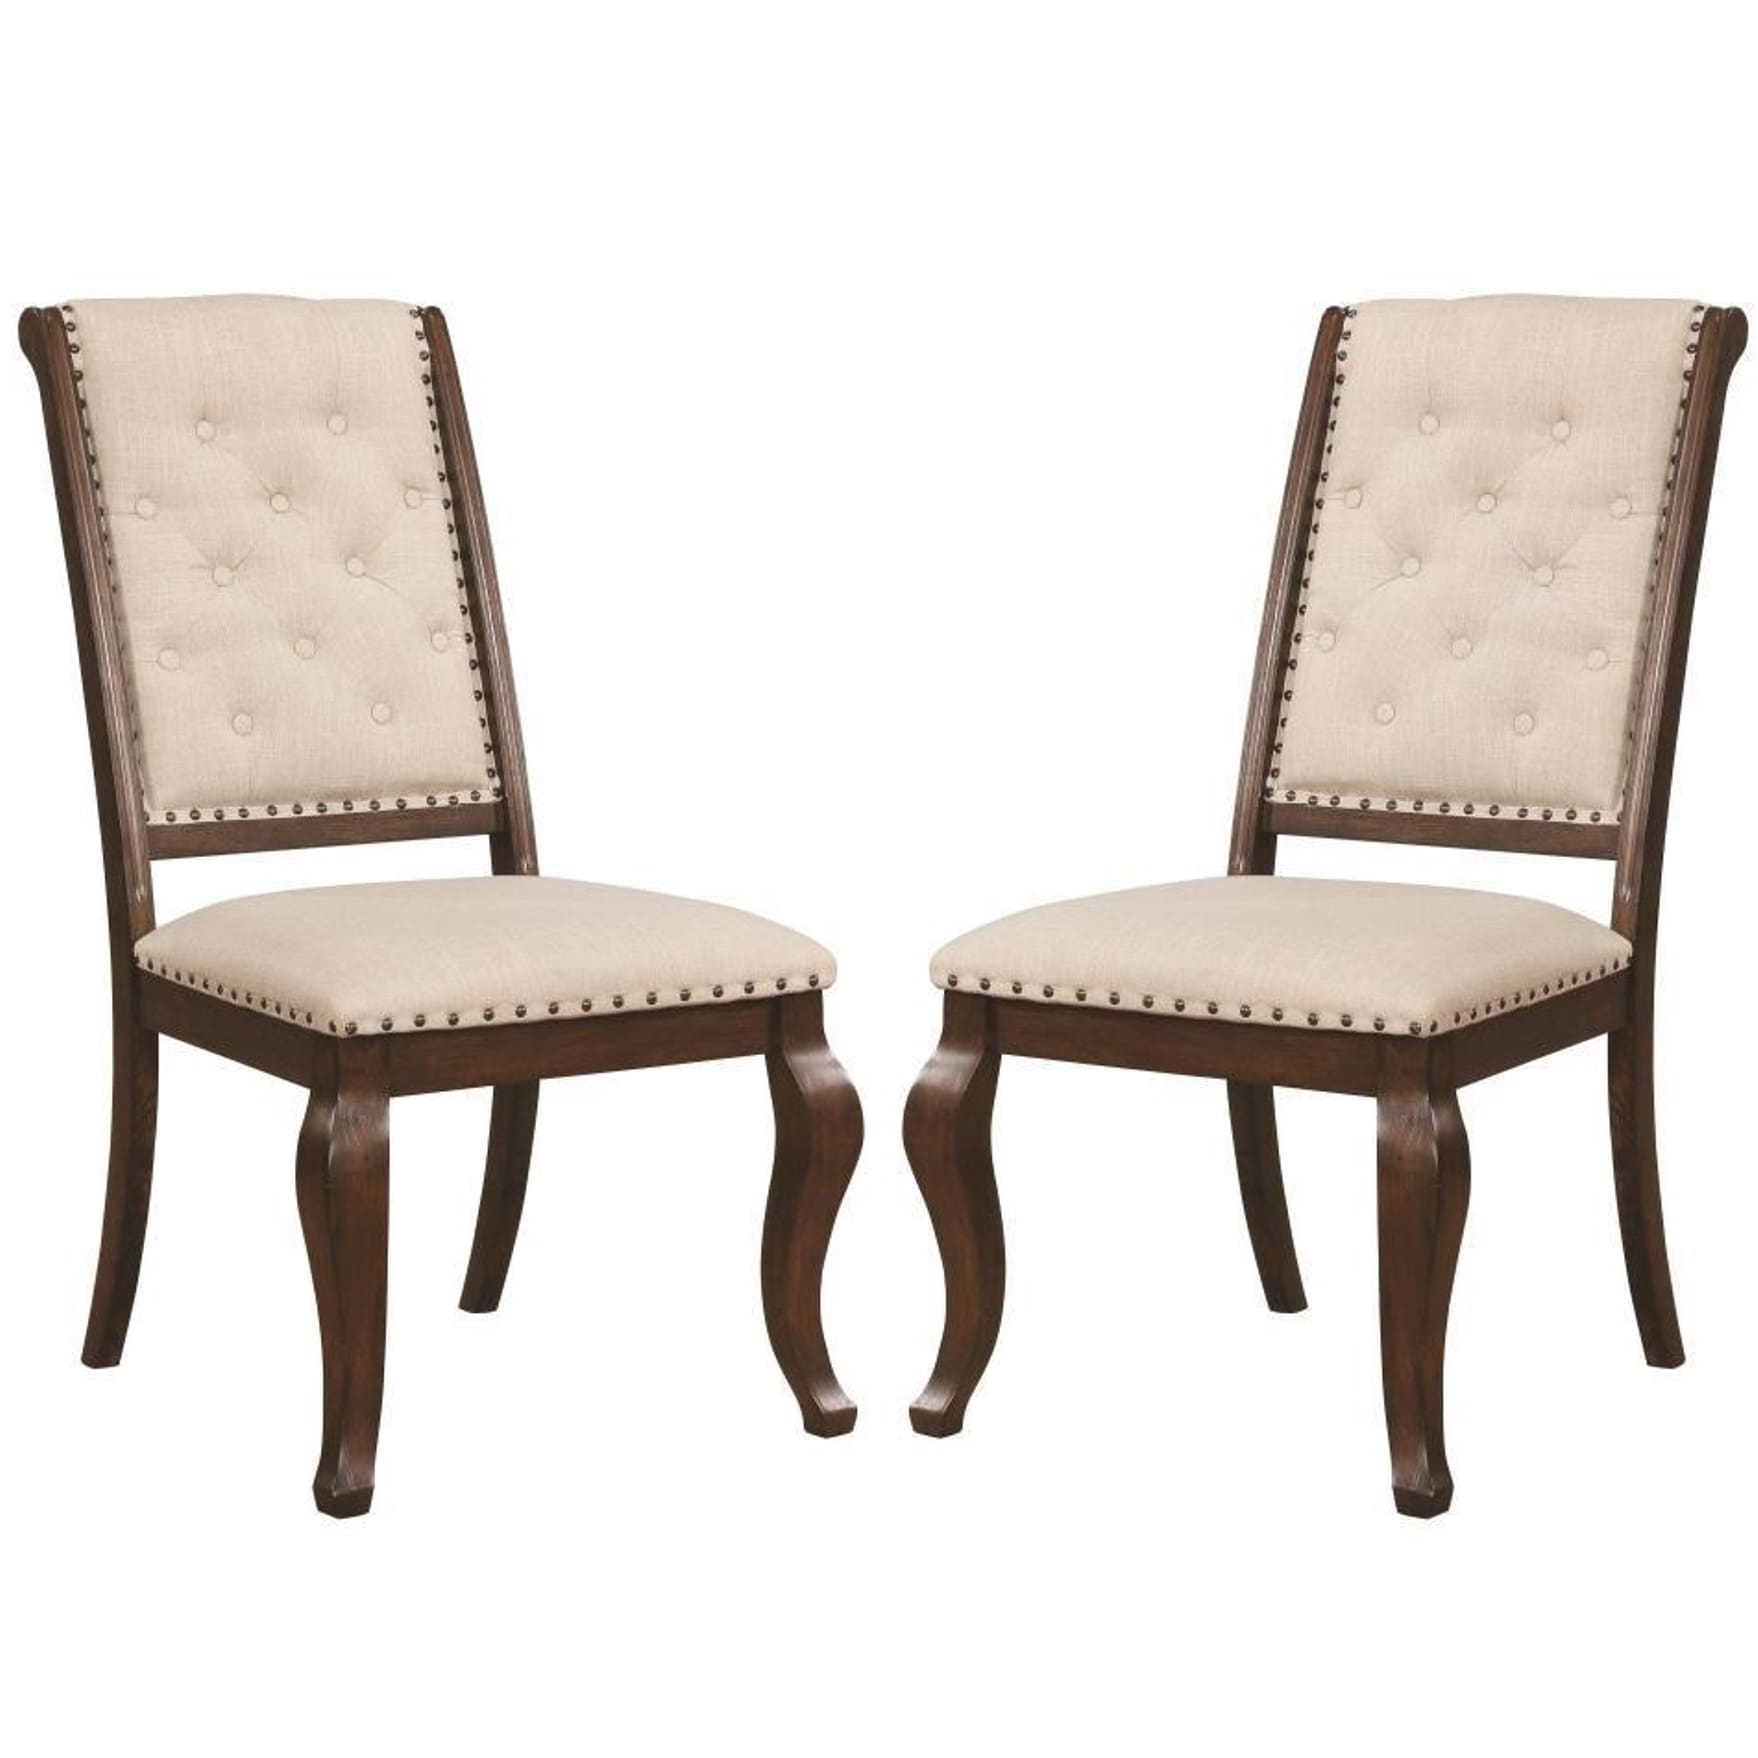 Merveilleux A Line Furniture French Neoclassic 18th Century Antique Design Button  Tufted Dining Chairs (Set Of 2)